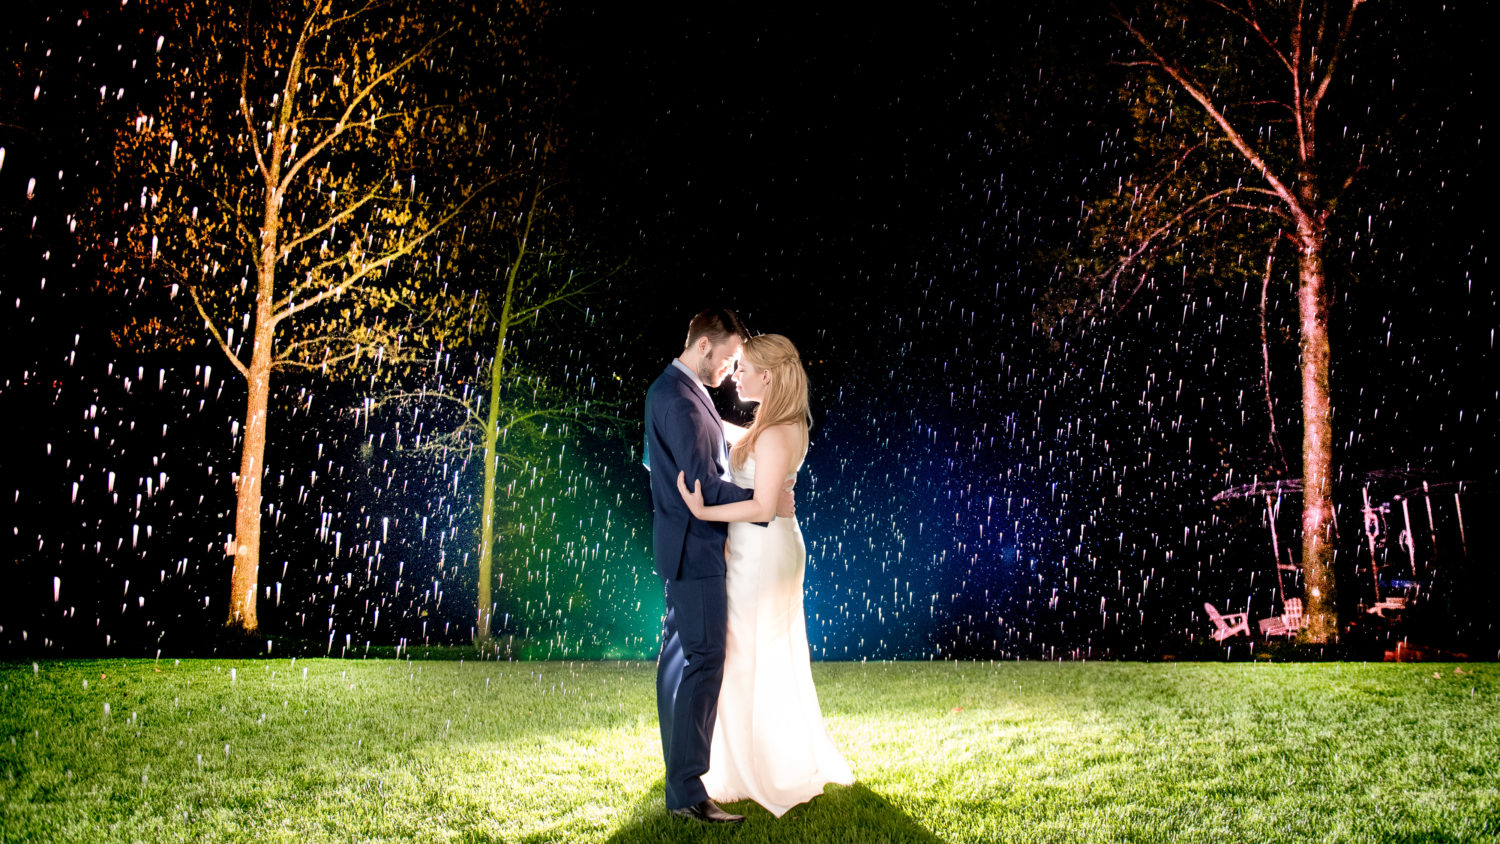 Rainbow rain backlit wedding portrait